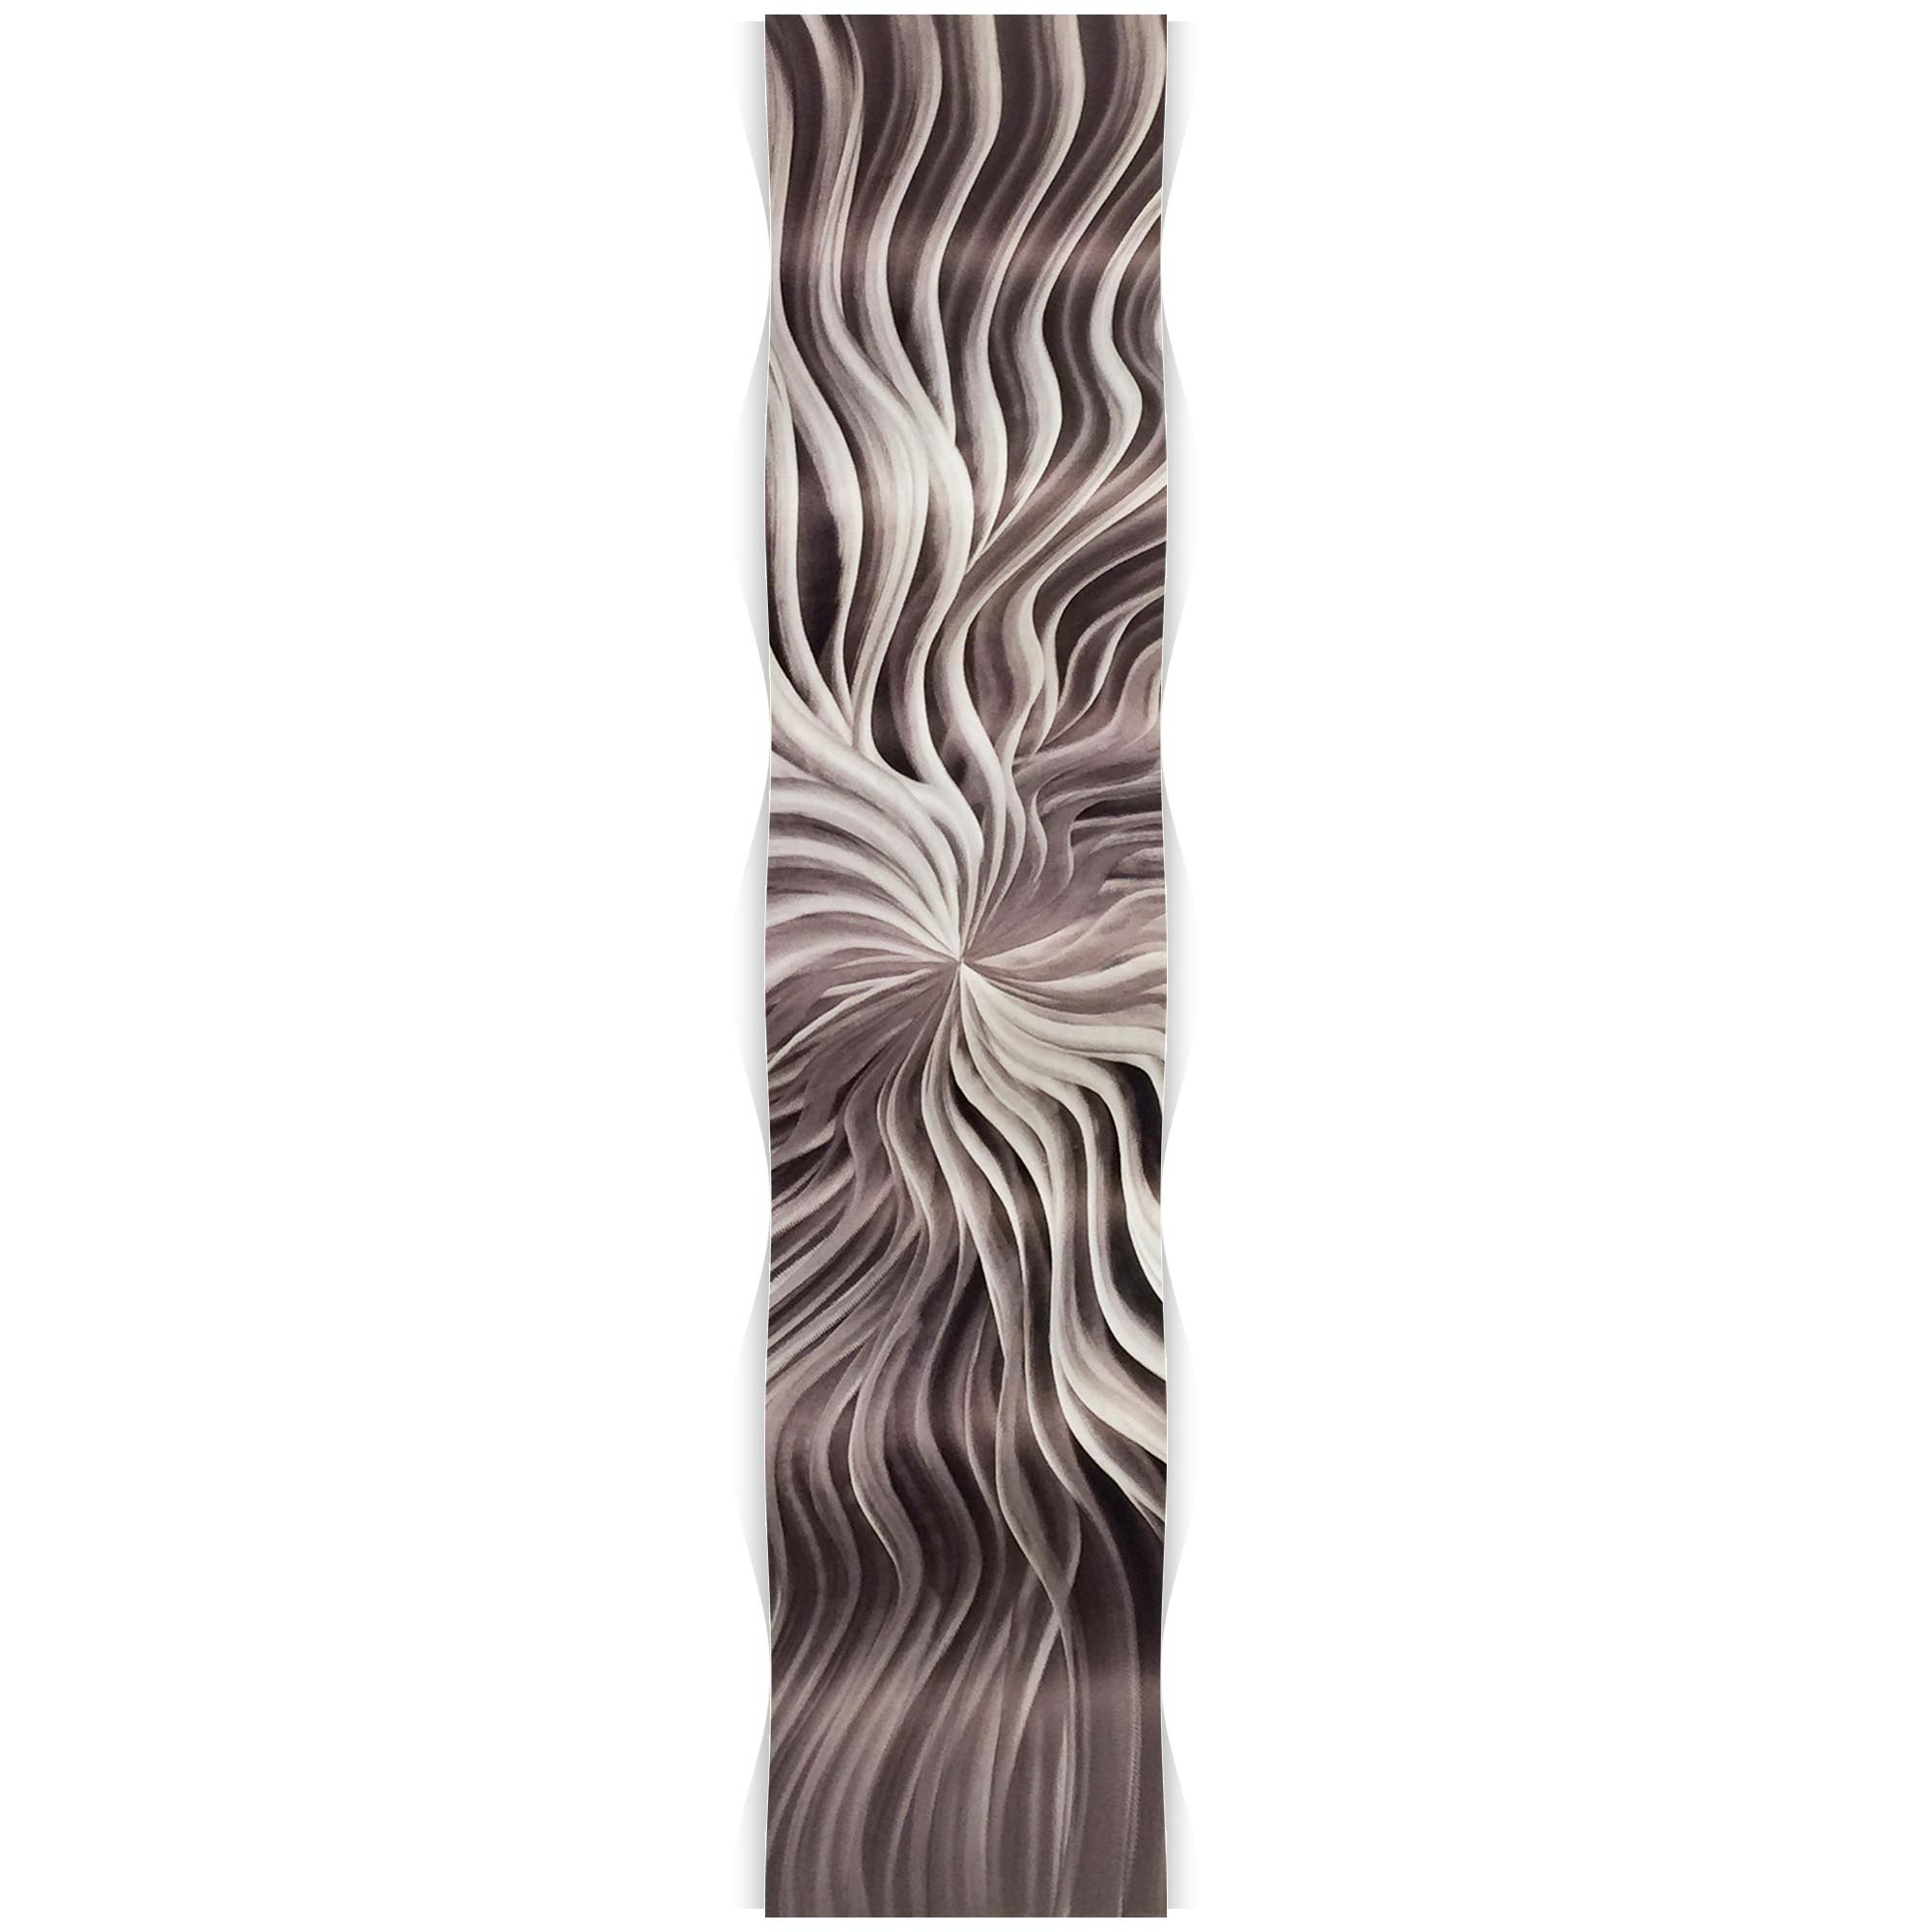 Flexure Wave 9.5x44in. Metal Eclectic Decor - Image 2